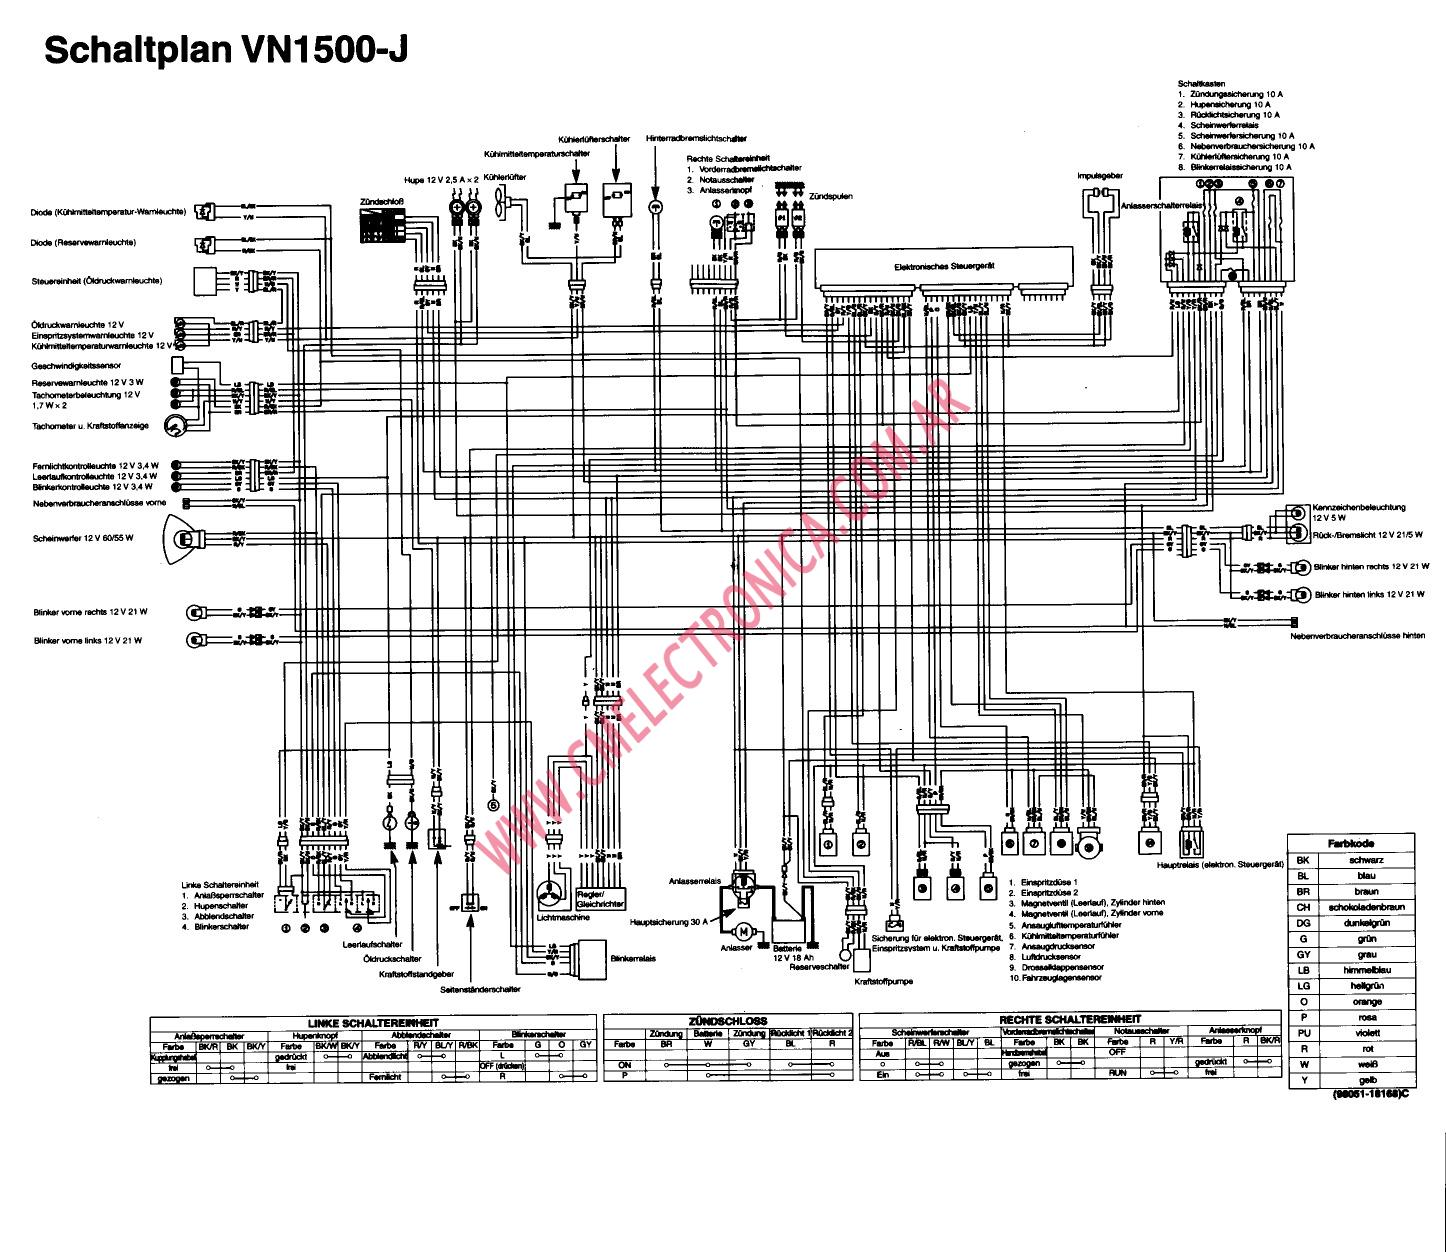 yamaha ar-1500 manual - womanmixe wiring diagram kawasaki vulcan 1500